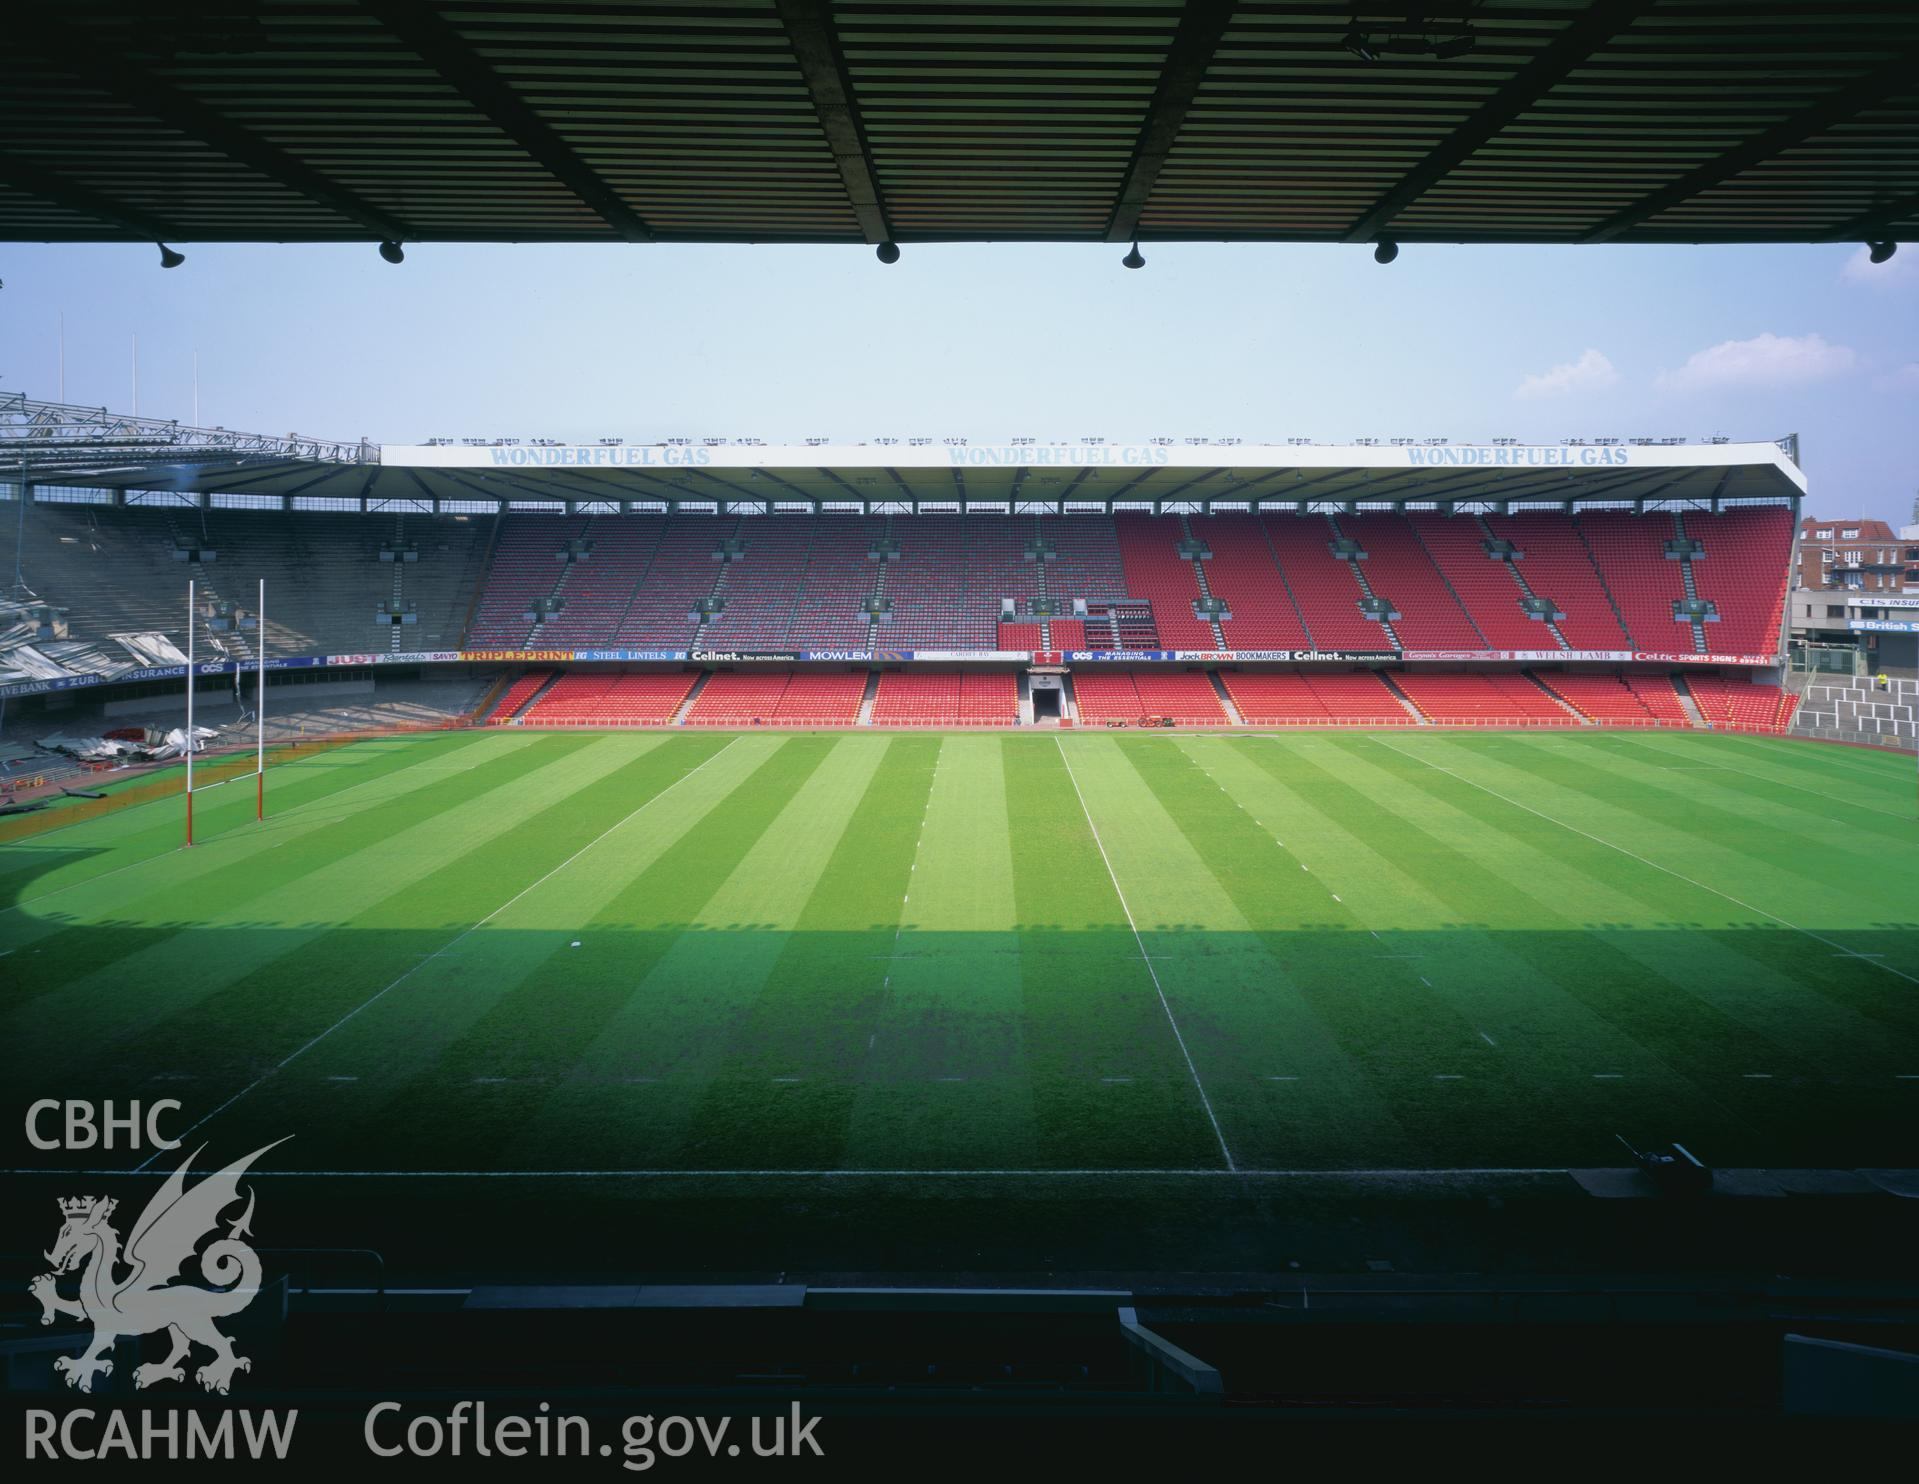 Colour transparency showing a view of the pitch and seating at Cardiff Arms Park, produced by Iain Wright 1997